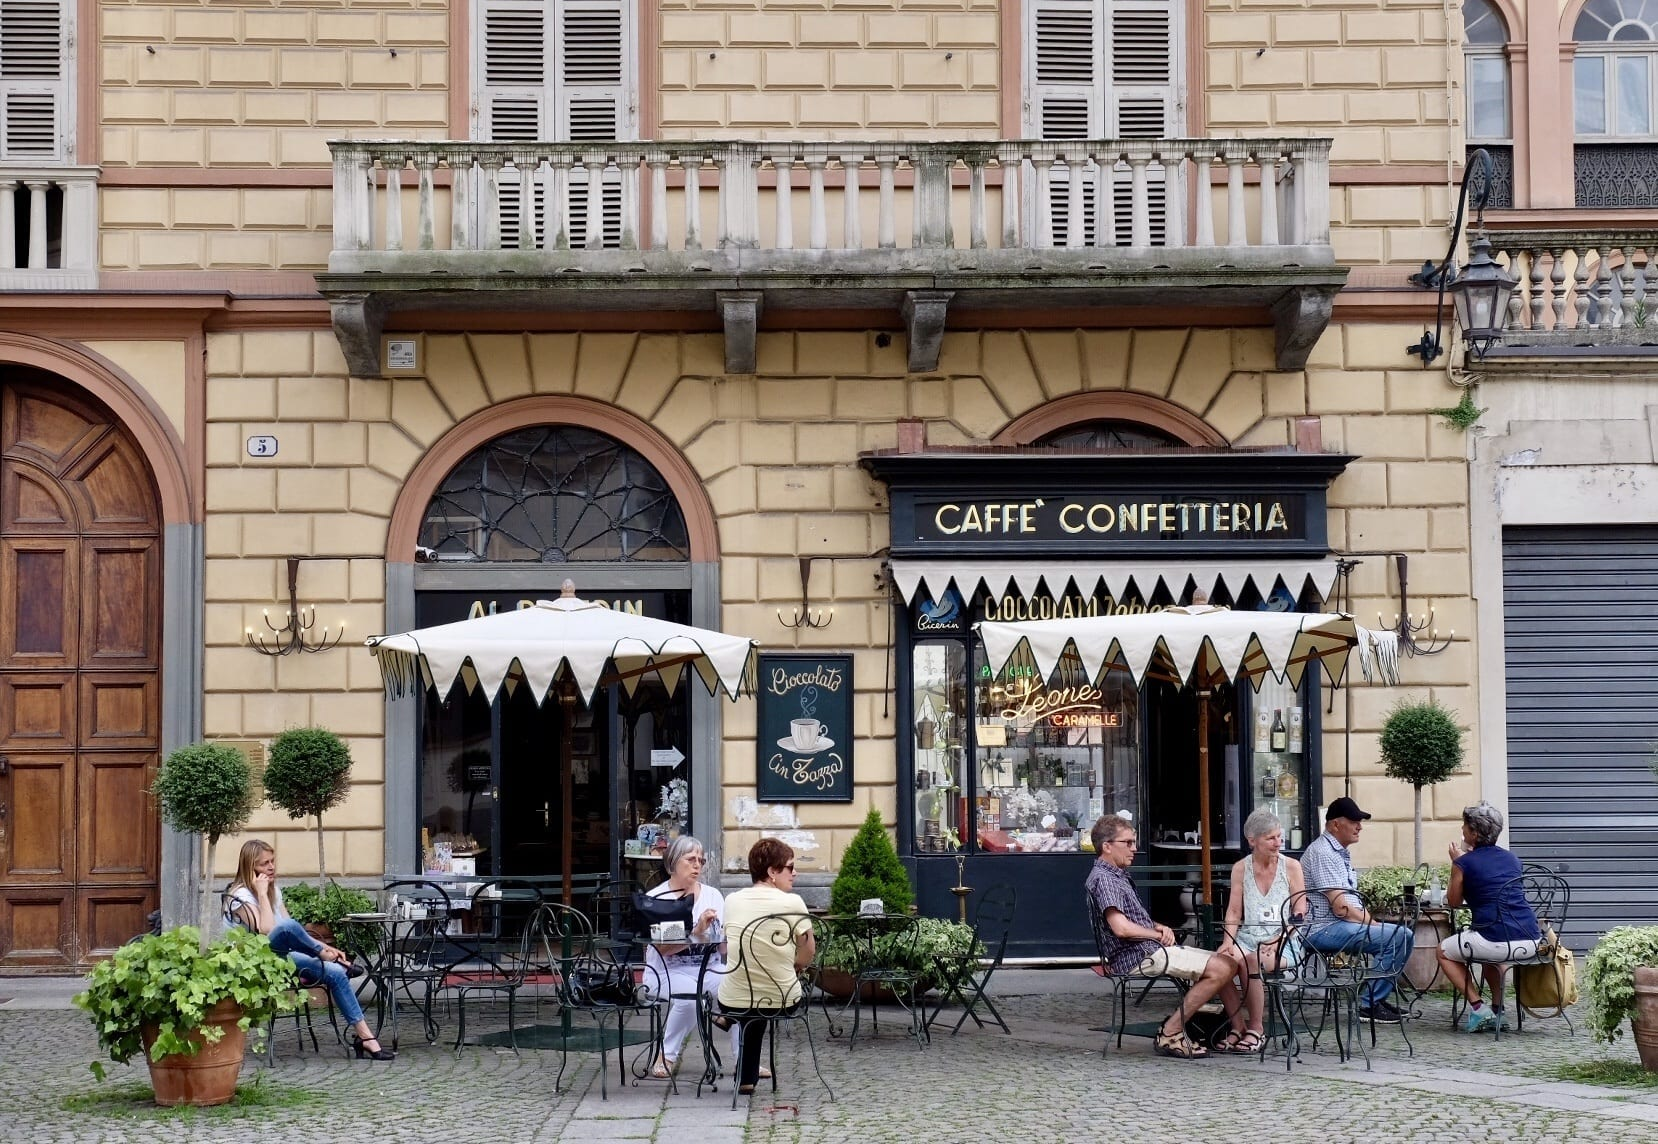 Several people sit at a sidewalk cafe in Torino, Italy. There are umbrellas and the building has a balcony on it.